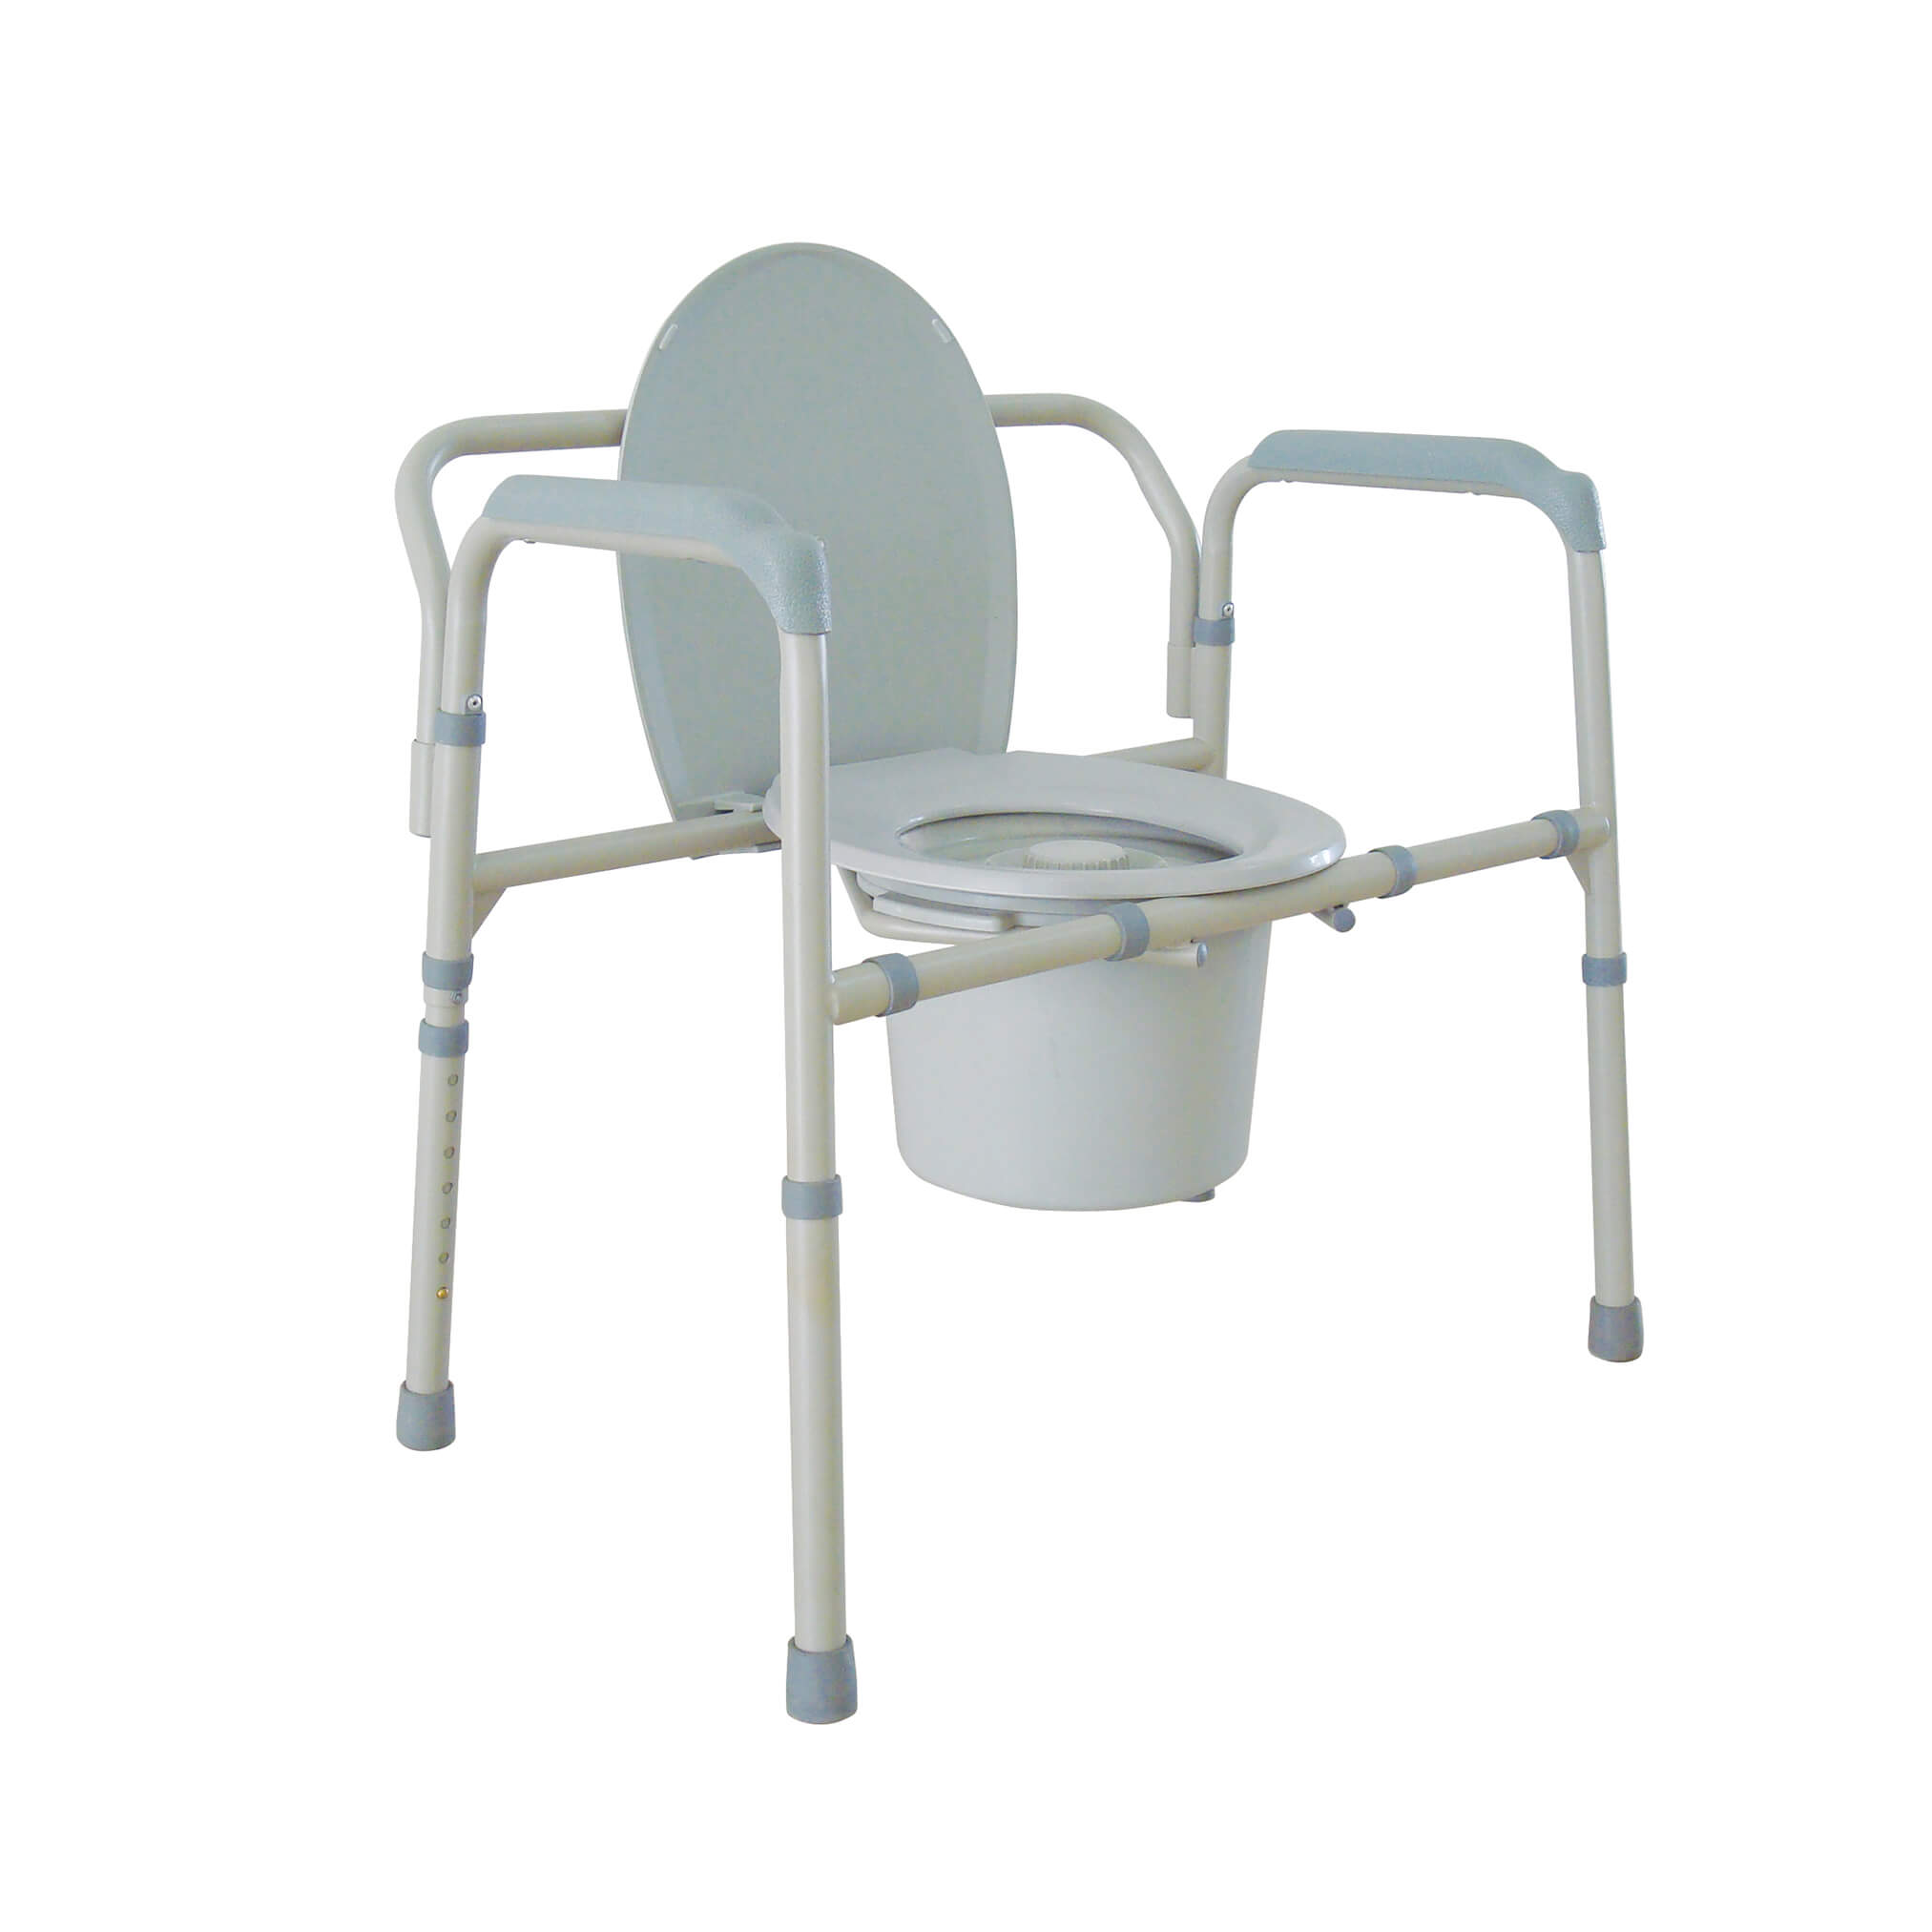 Heavy duty bariatric folding bedside commode seat for Does medicare cover bathroom equipment